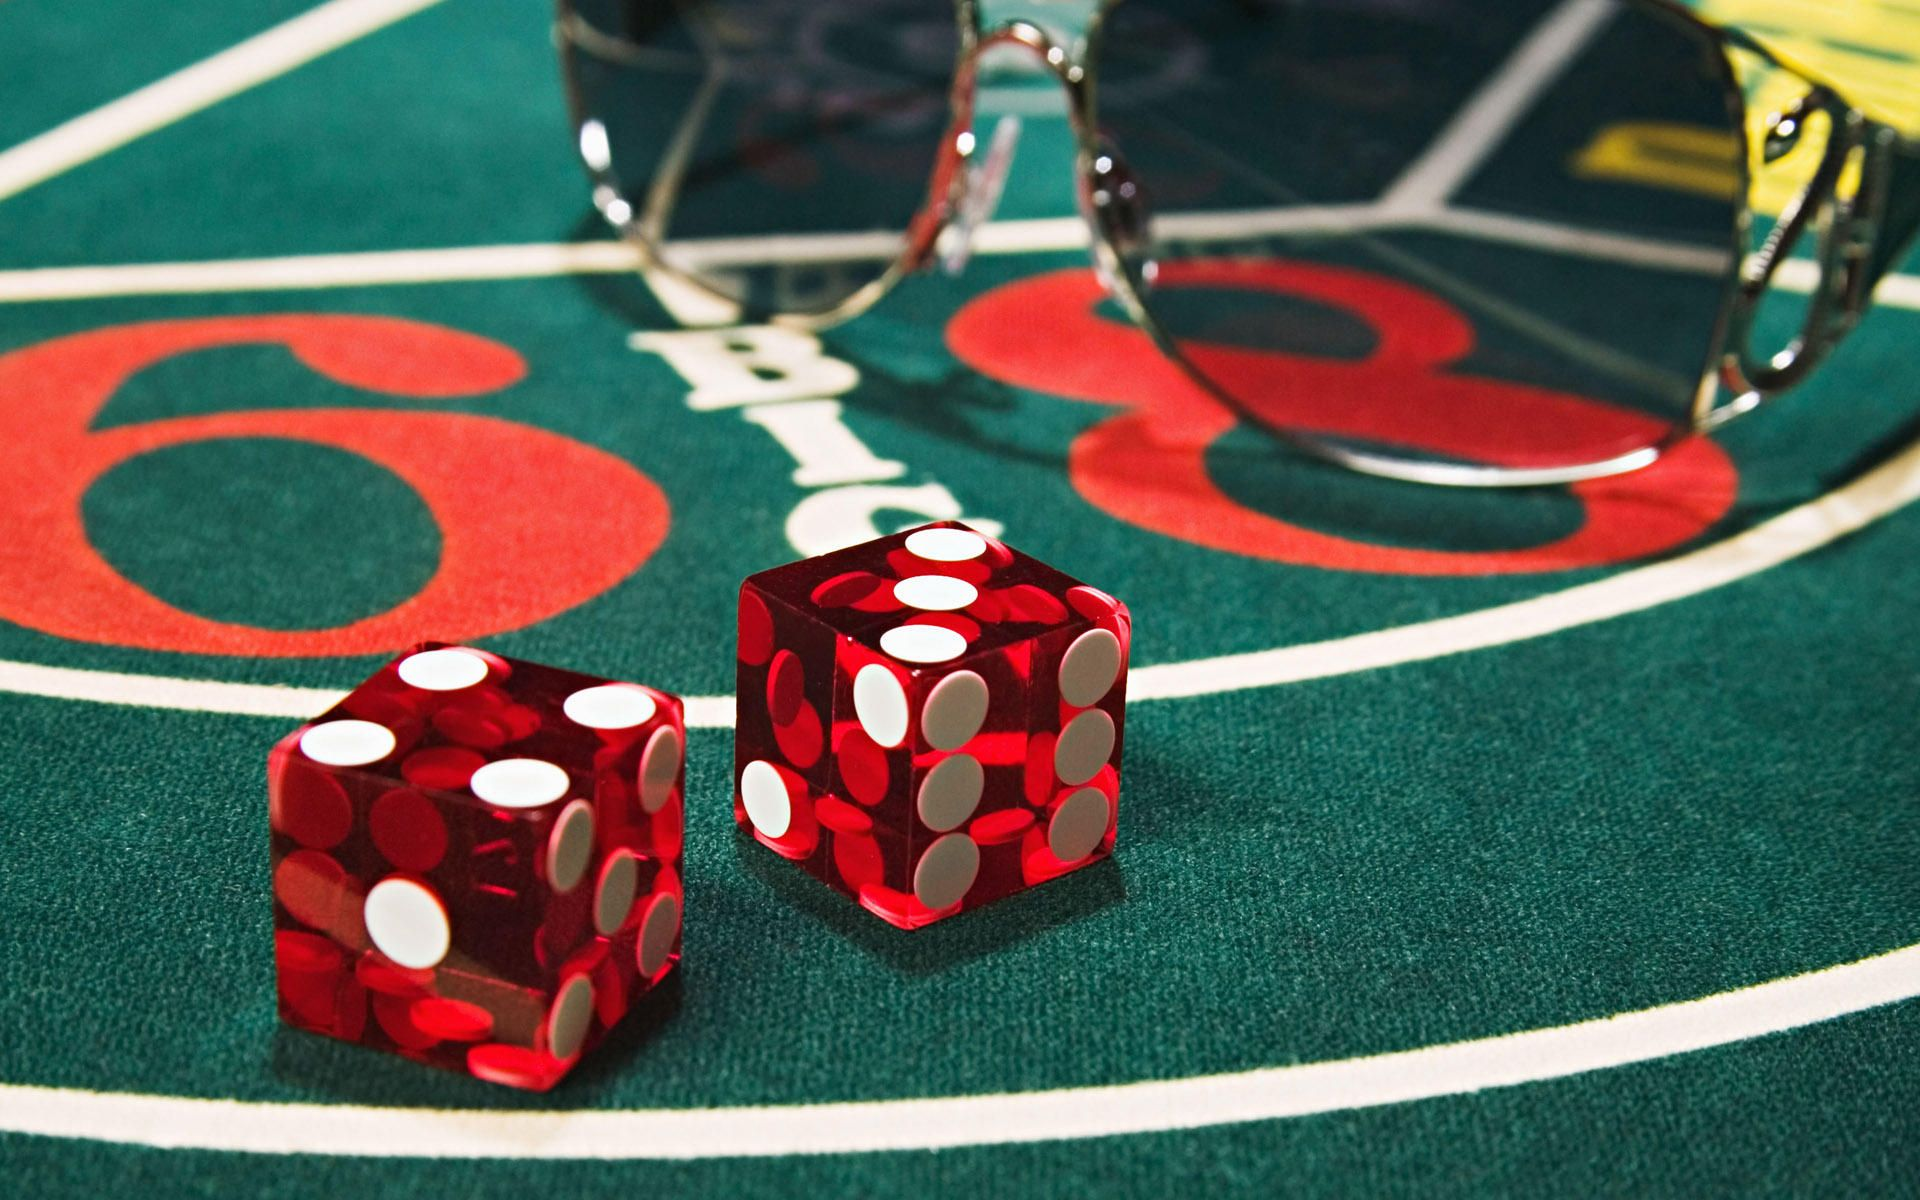 Find a slot site that offers a wide variety of games of chance